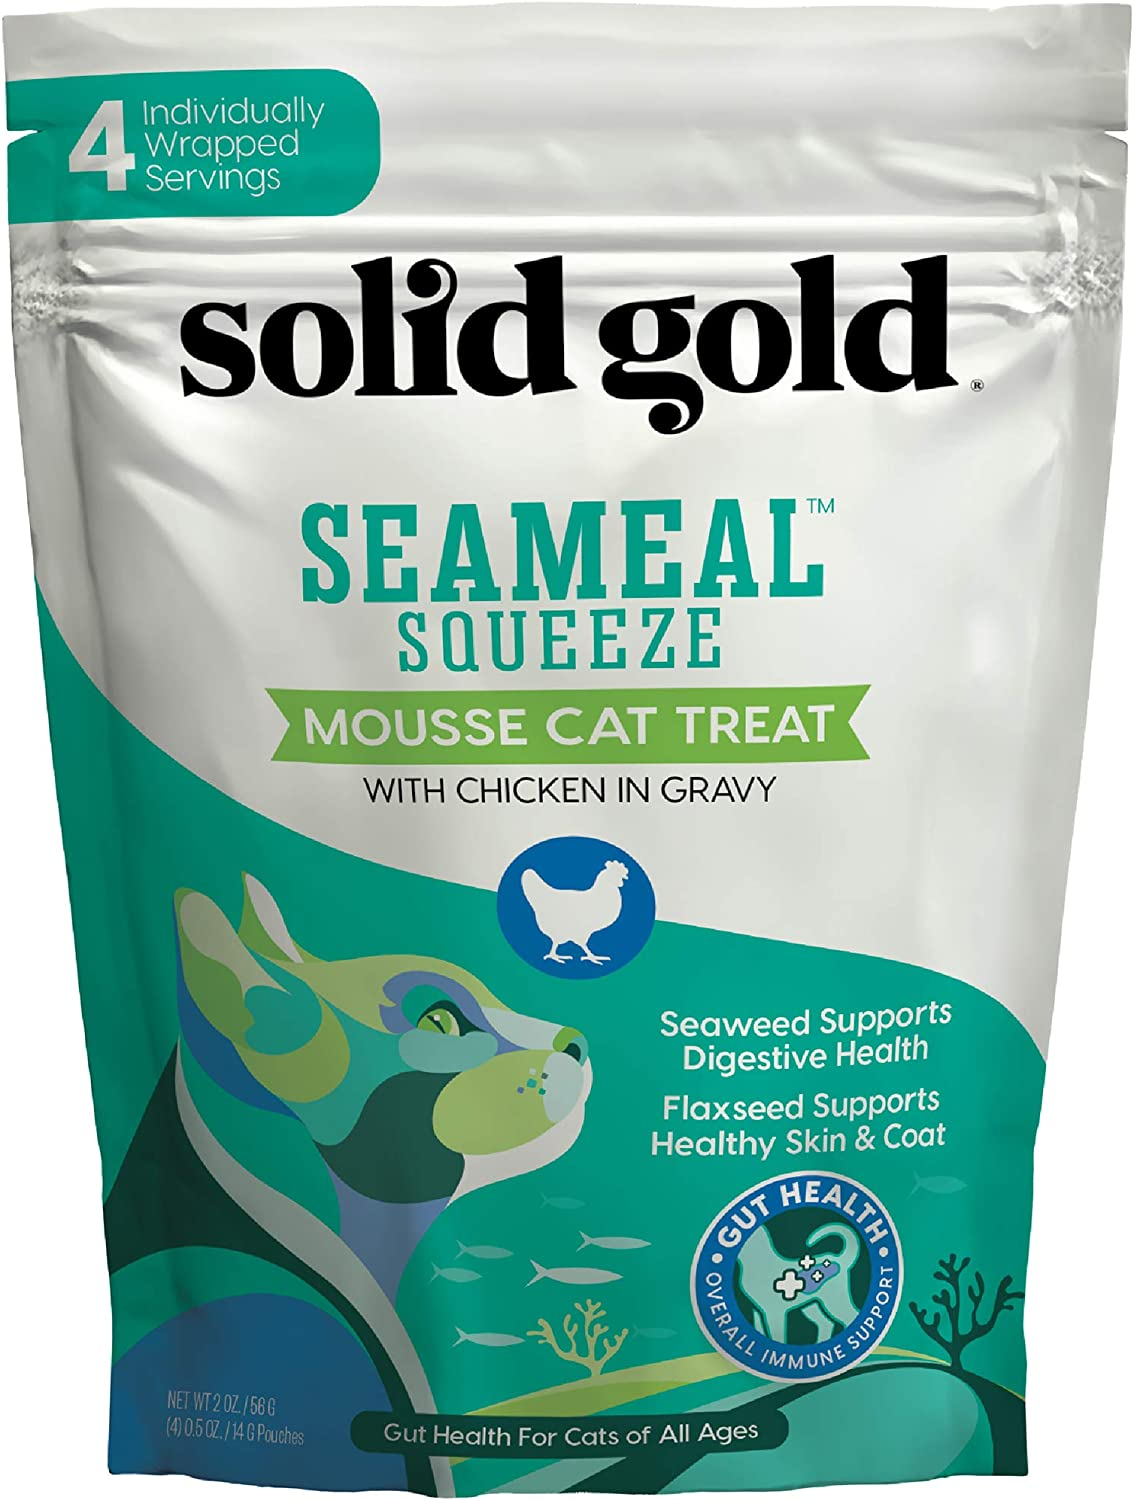 SeaMeal Squeeze Chicken Lickable Cat Treat with Seaweed for Skin, Coat, Digestive & Immune Health - Natural, Holistic, Grain-Free (48 Squeezes)